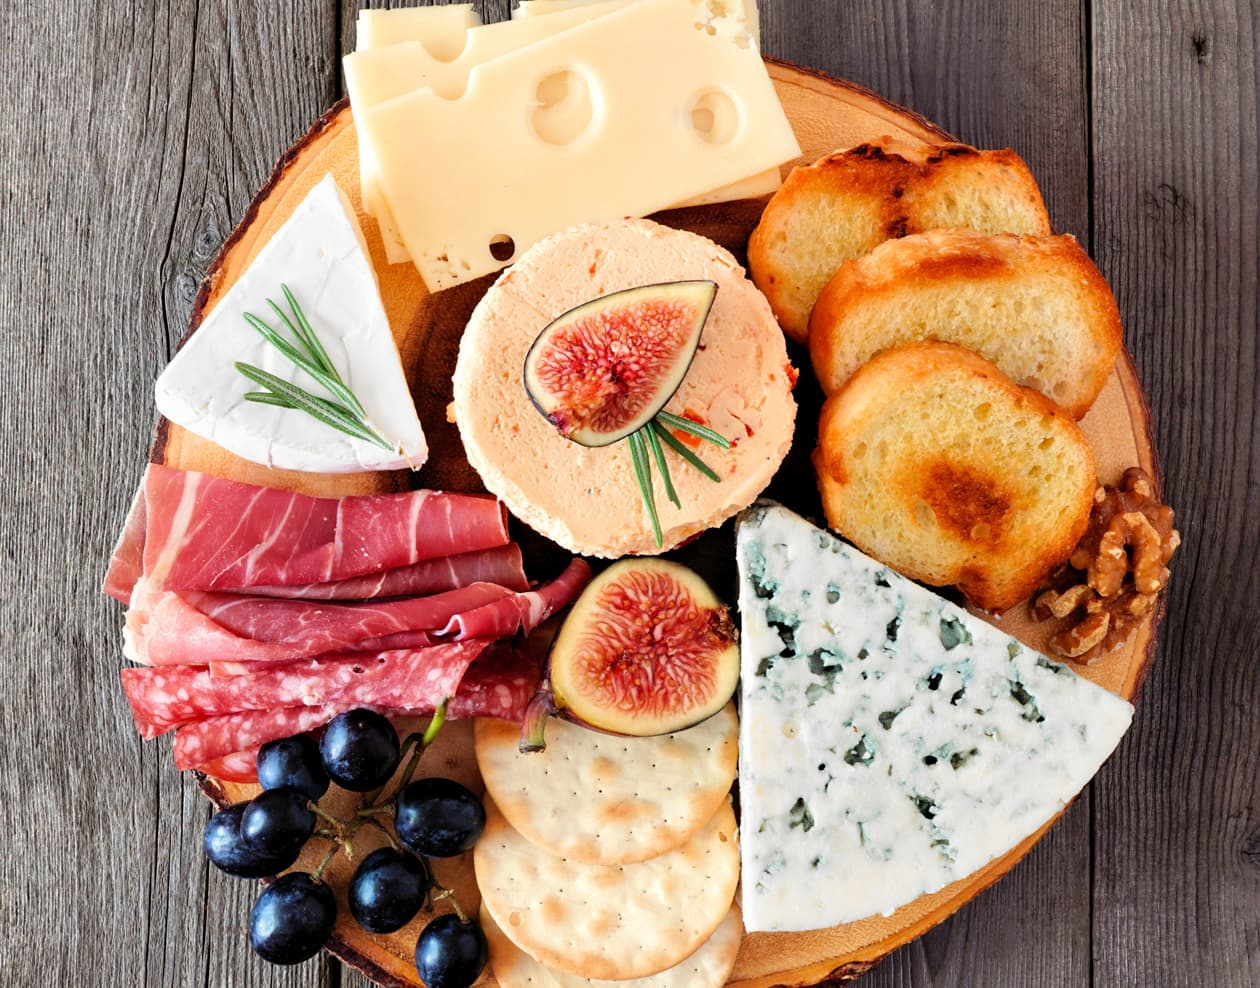 a selection of meats and cheeses on a board